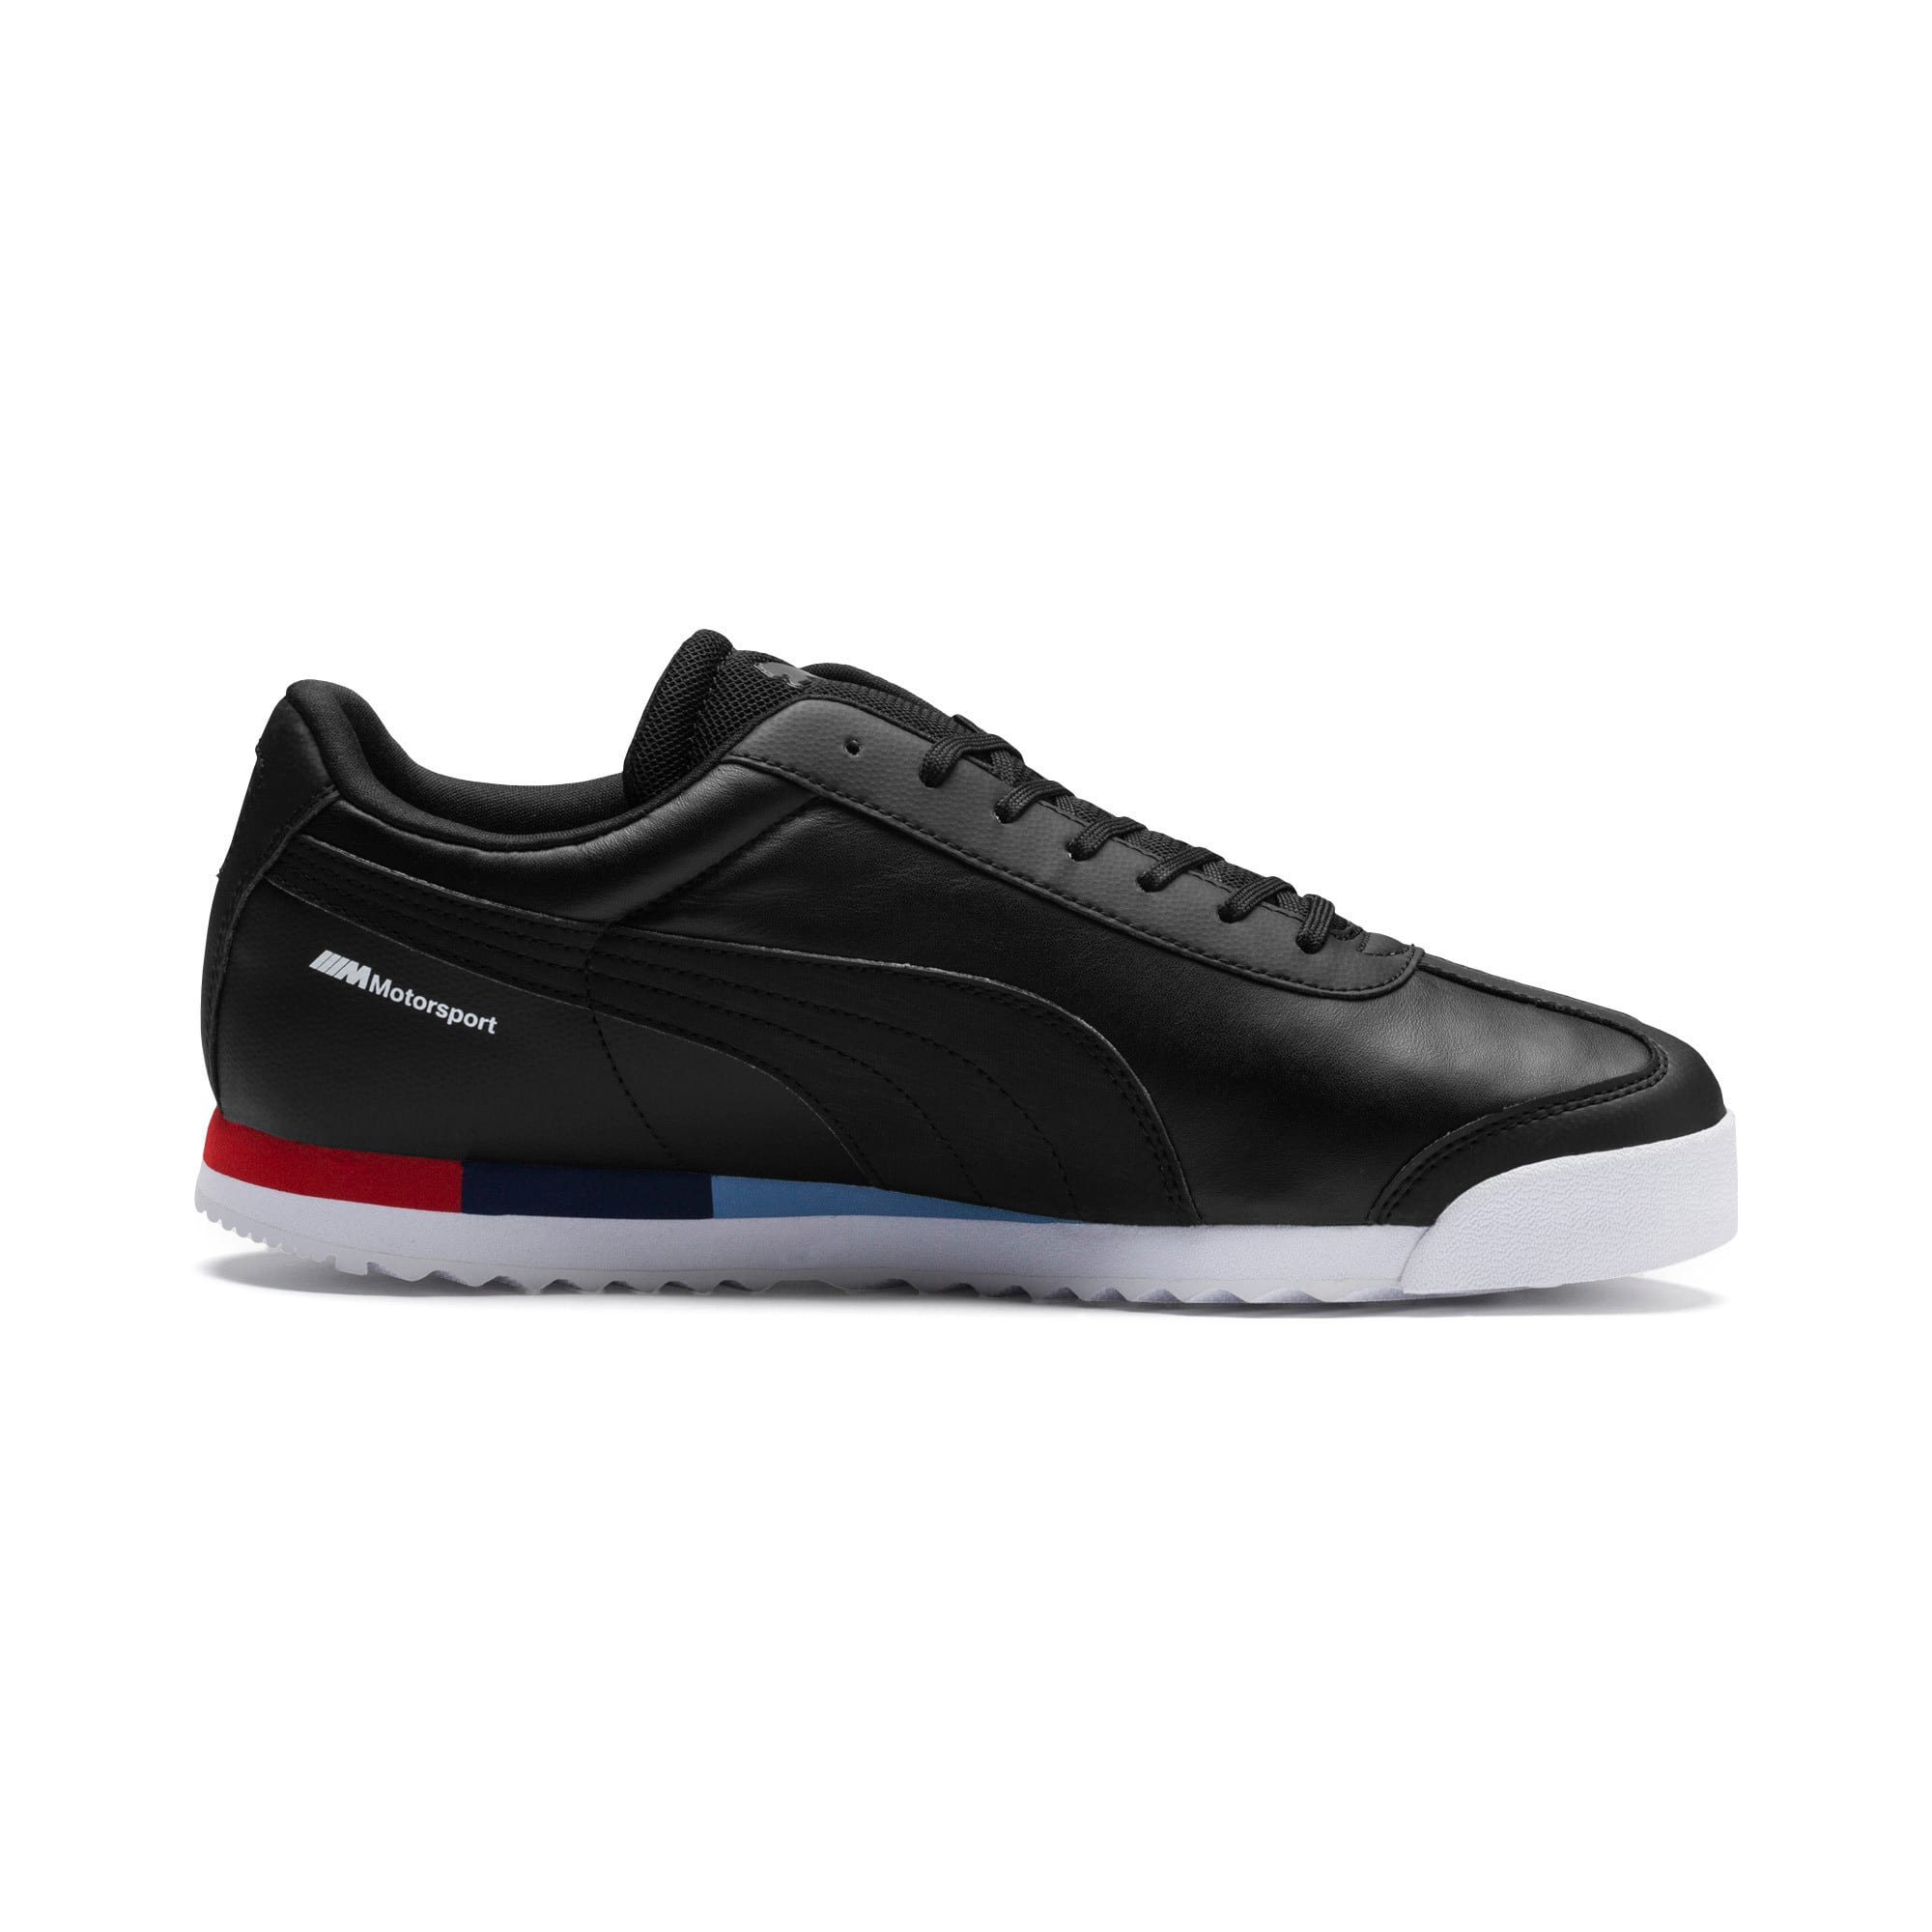 Thumbnail 5 of BMW MMS Roma Men's Trainers, Puma Black-Puma Black, medium